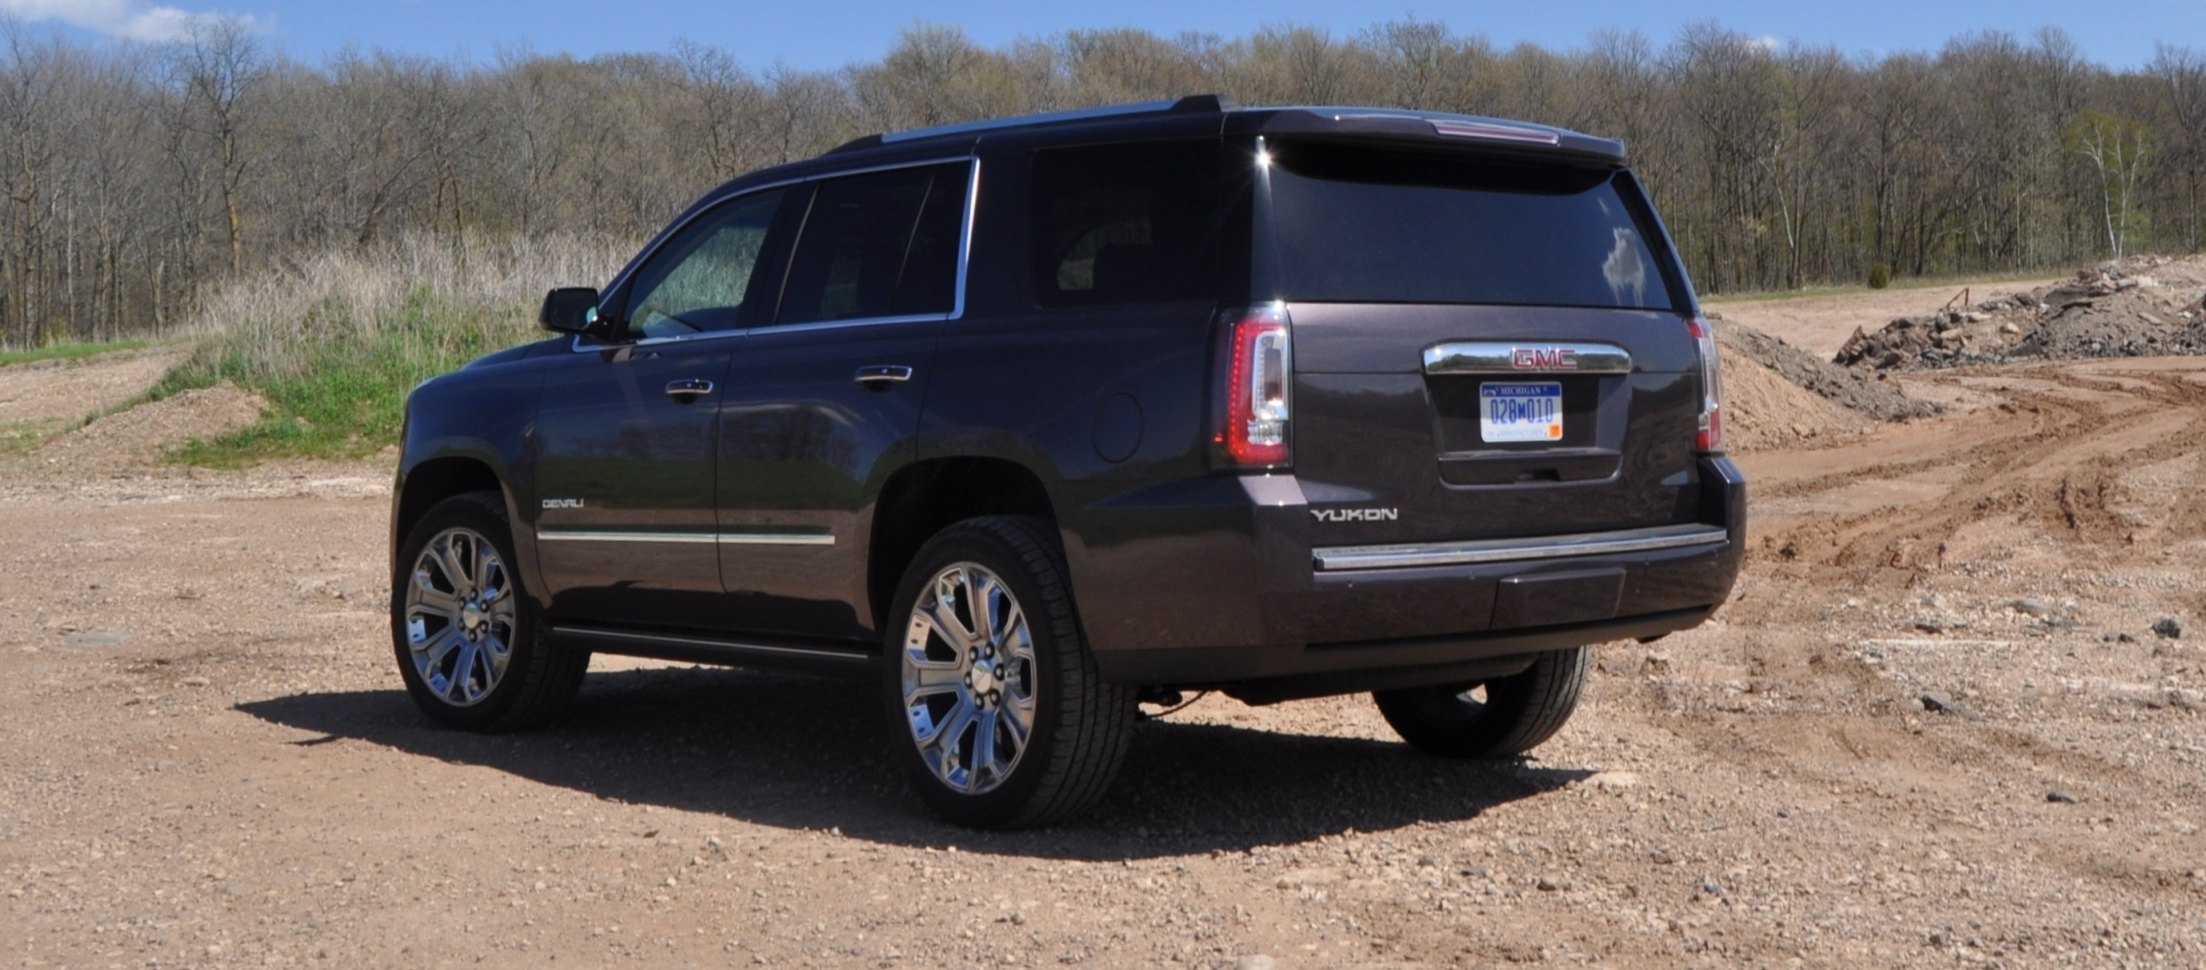 Road Test Review - 2015 GMC Yukon Denali Is 6.2-Second, 6 ...